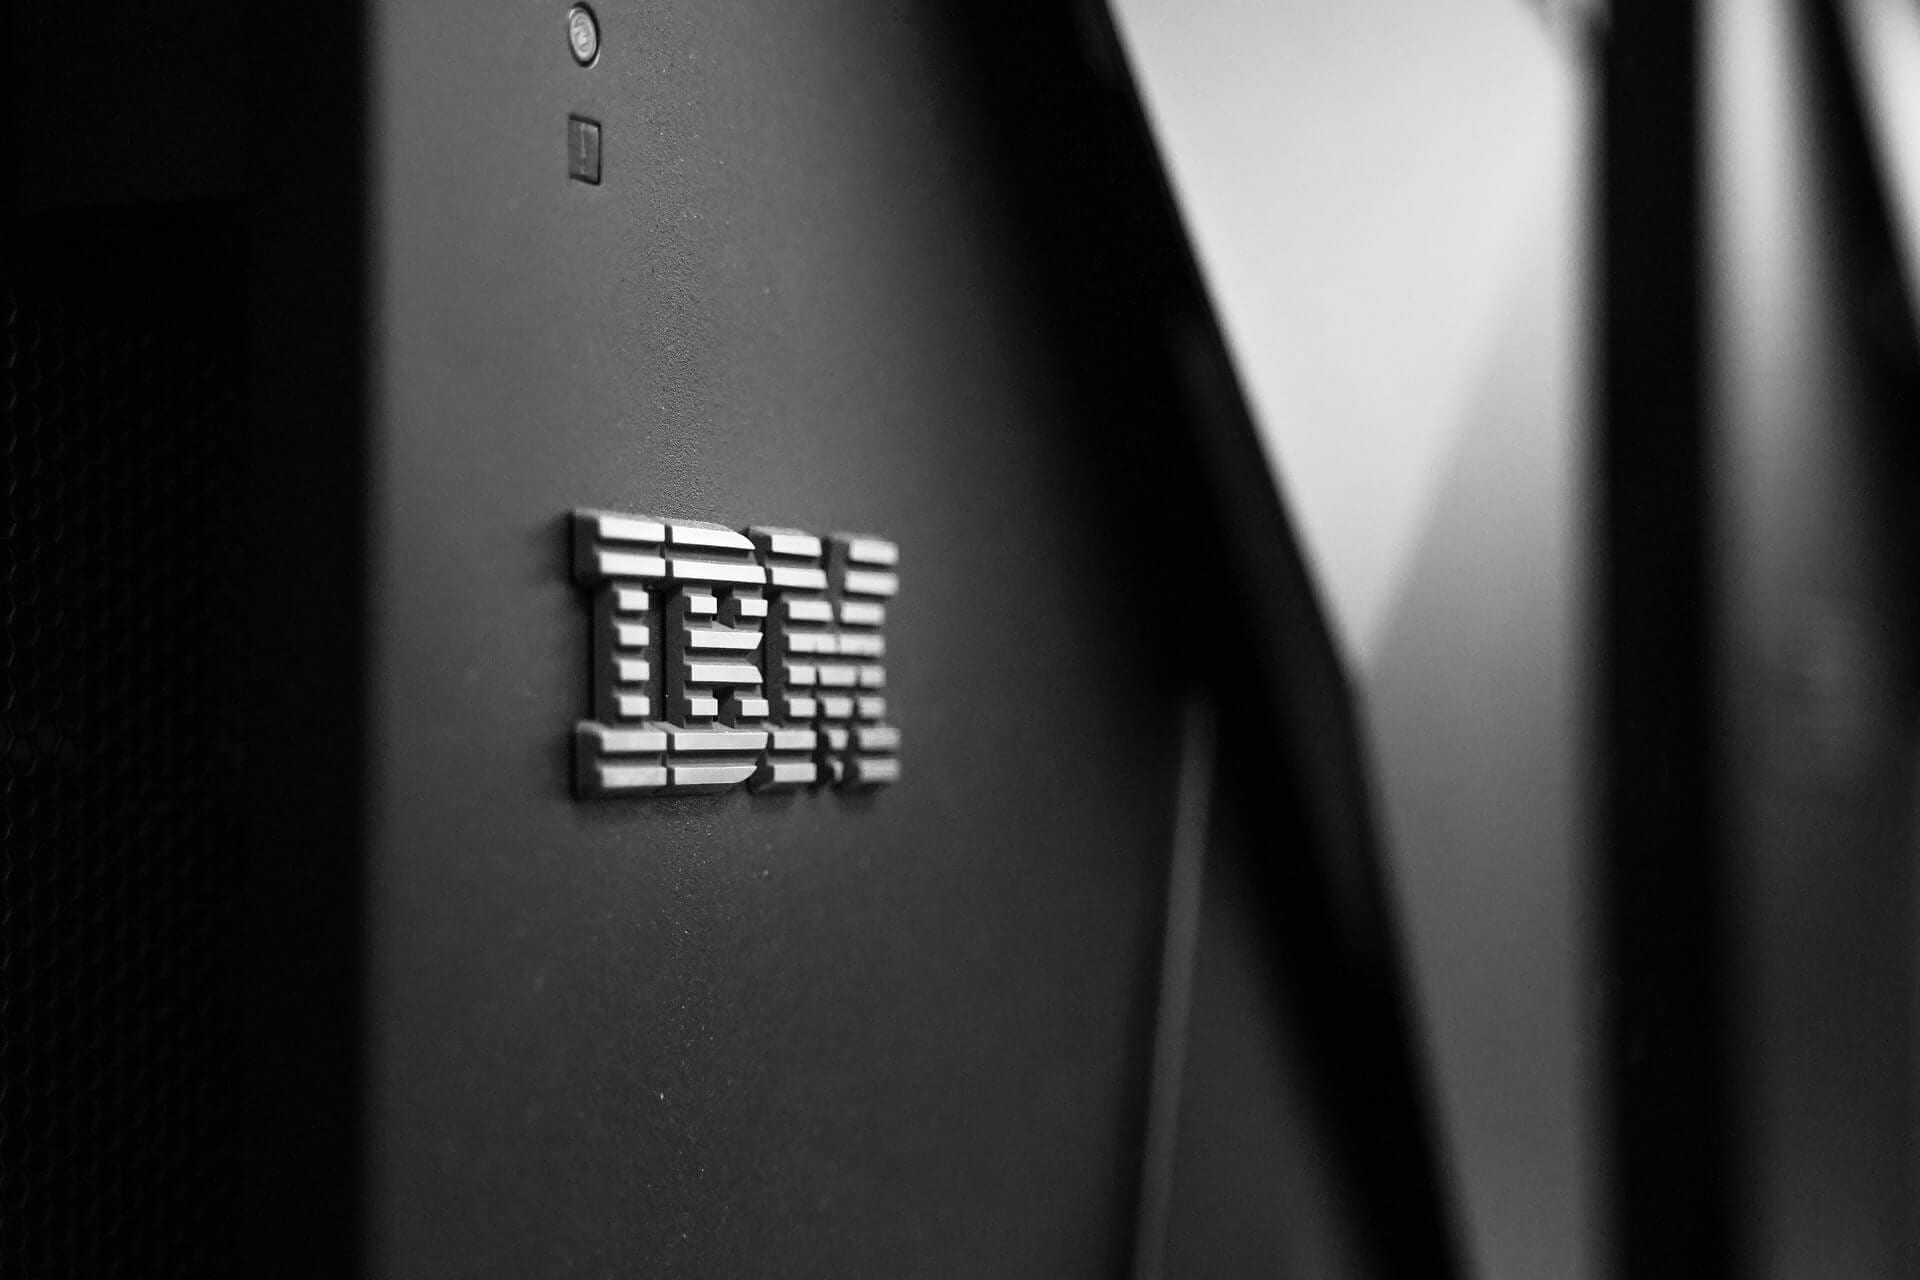 IBM blockchain technology and use cases